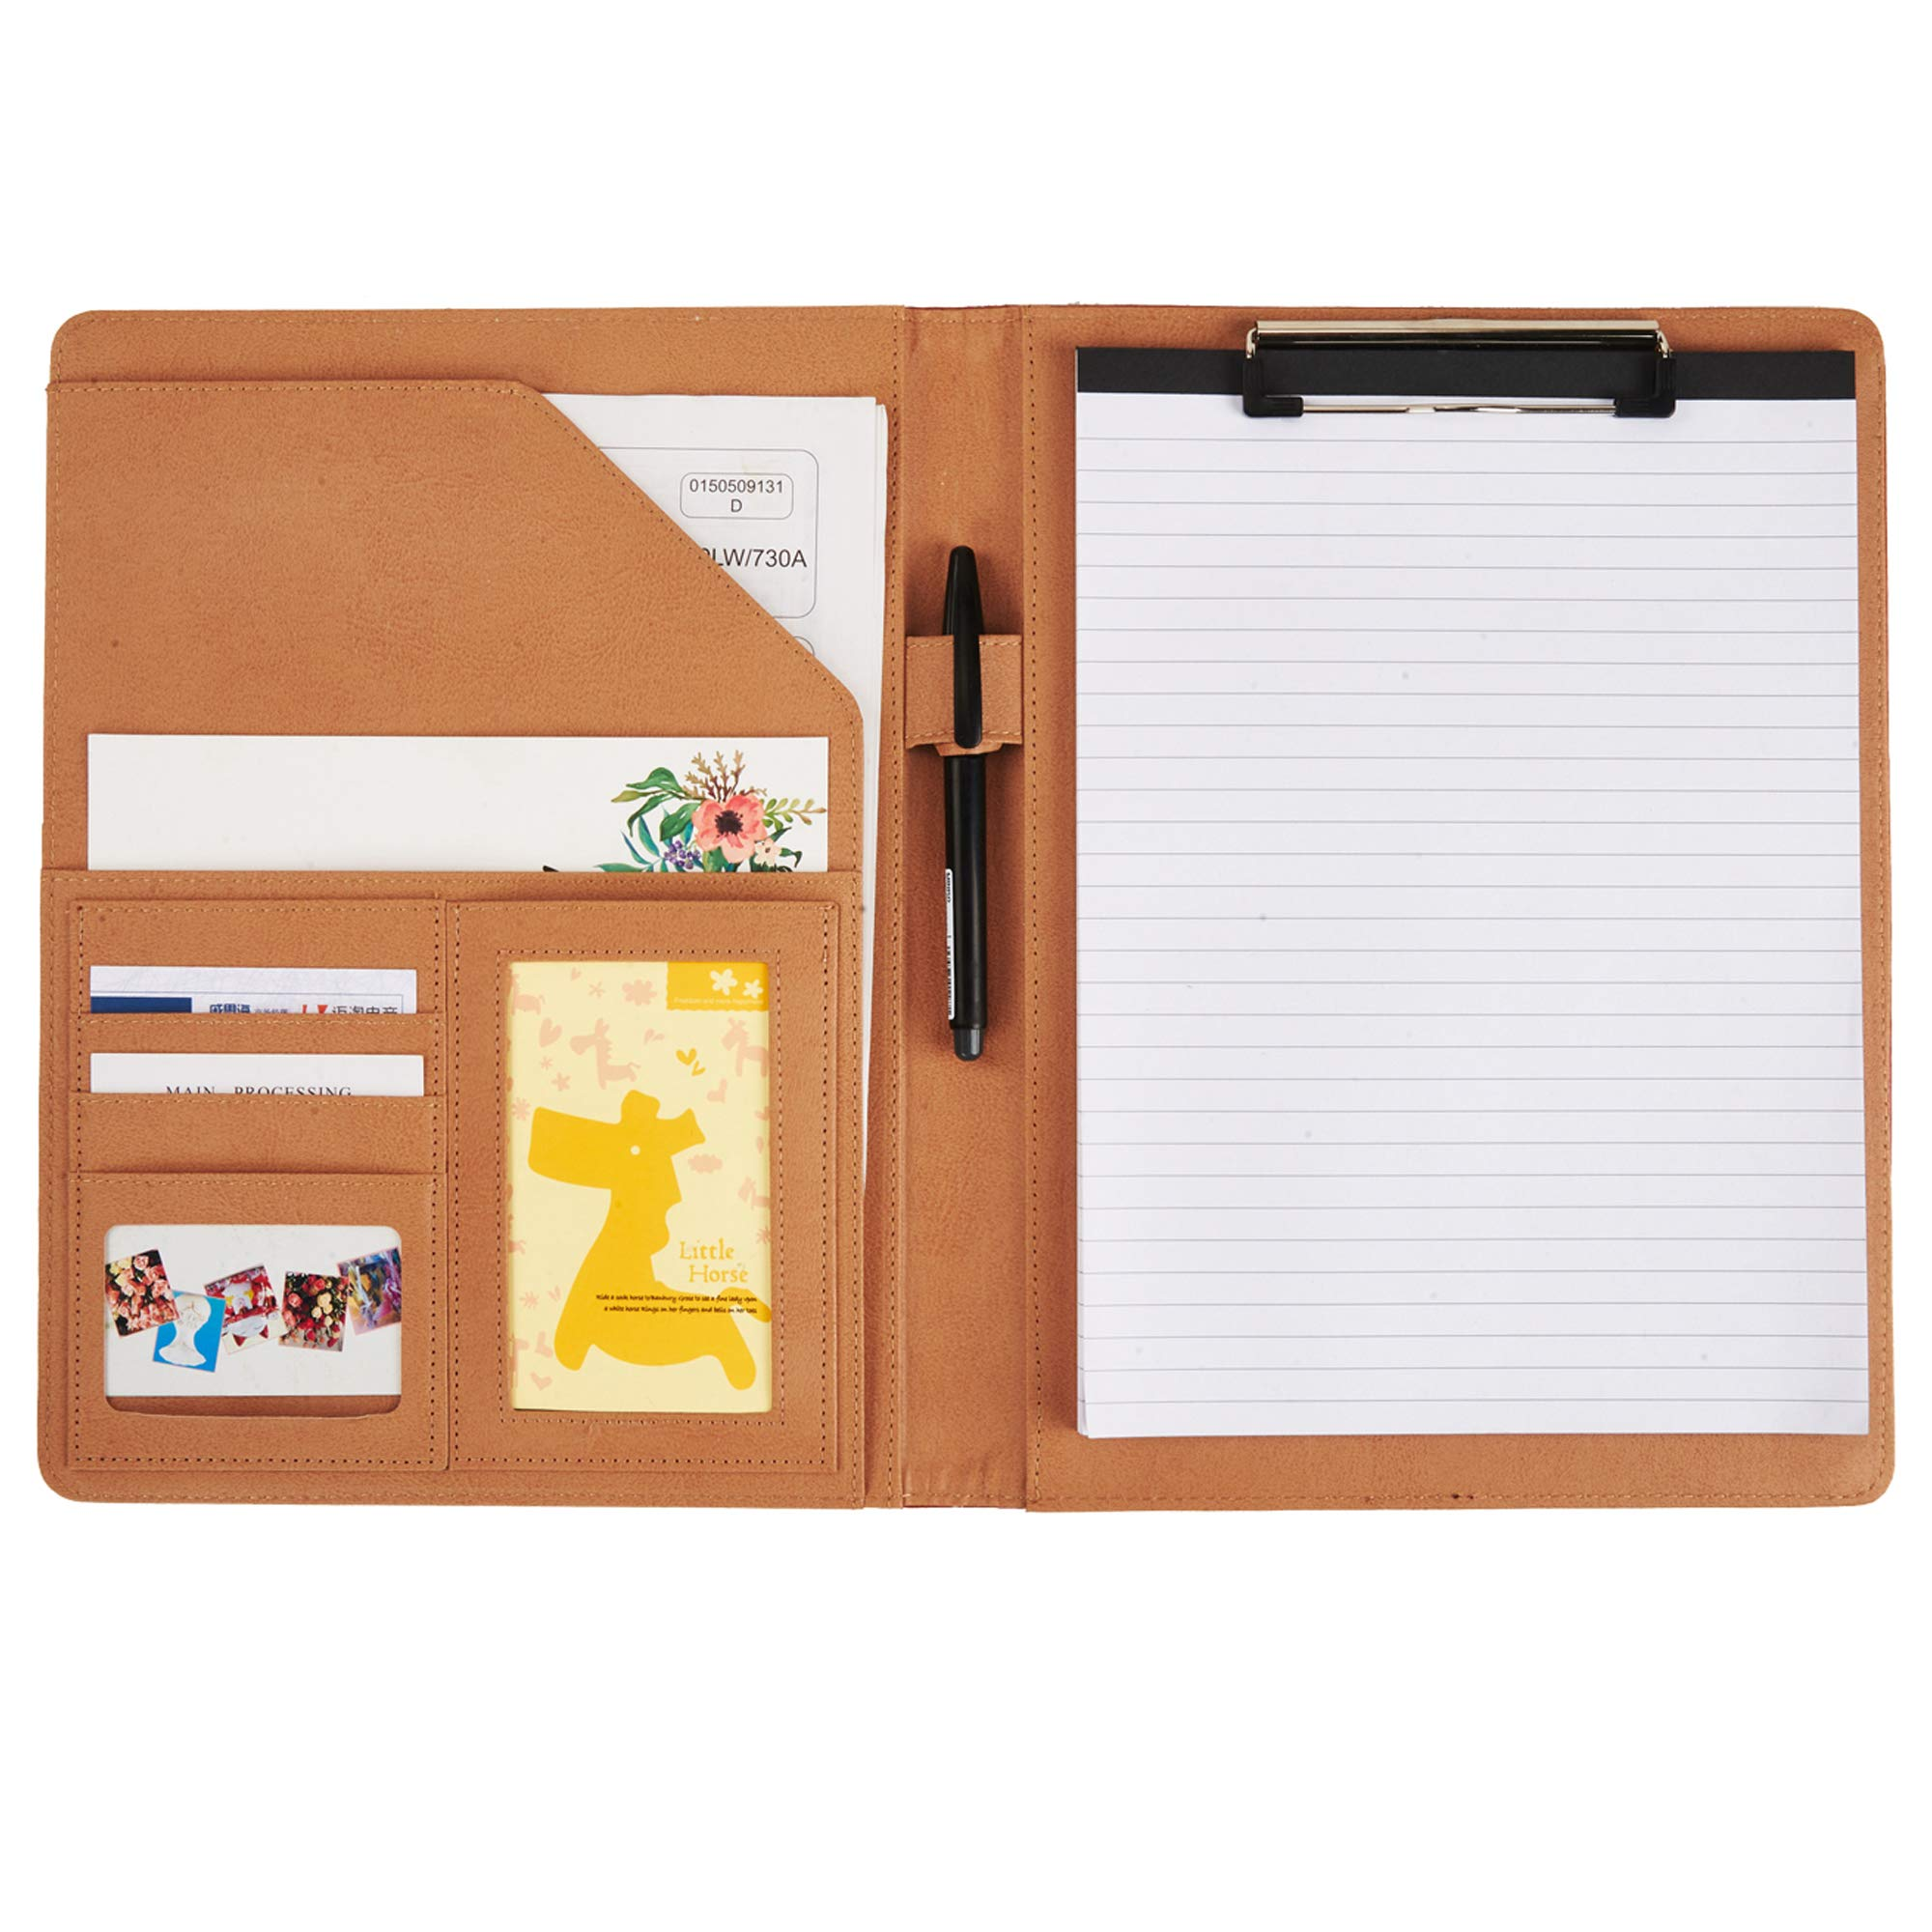 Document Organizer Padfolio Resume Portfolio Folder Clipboard Pad Holder Letter Size A4 with Writing Notepad Business Card Holder for School Office Interview (Black)